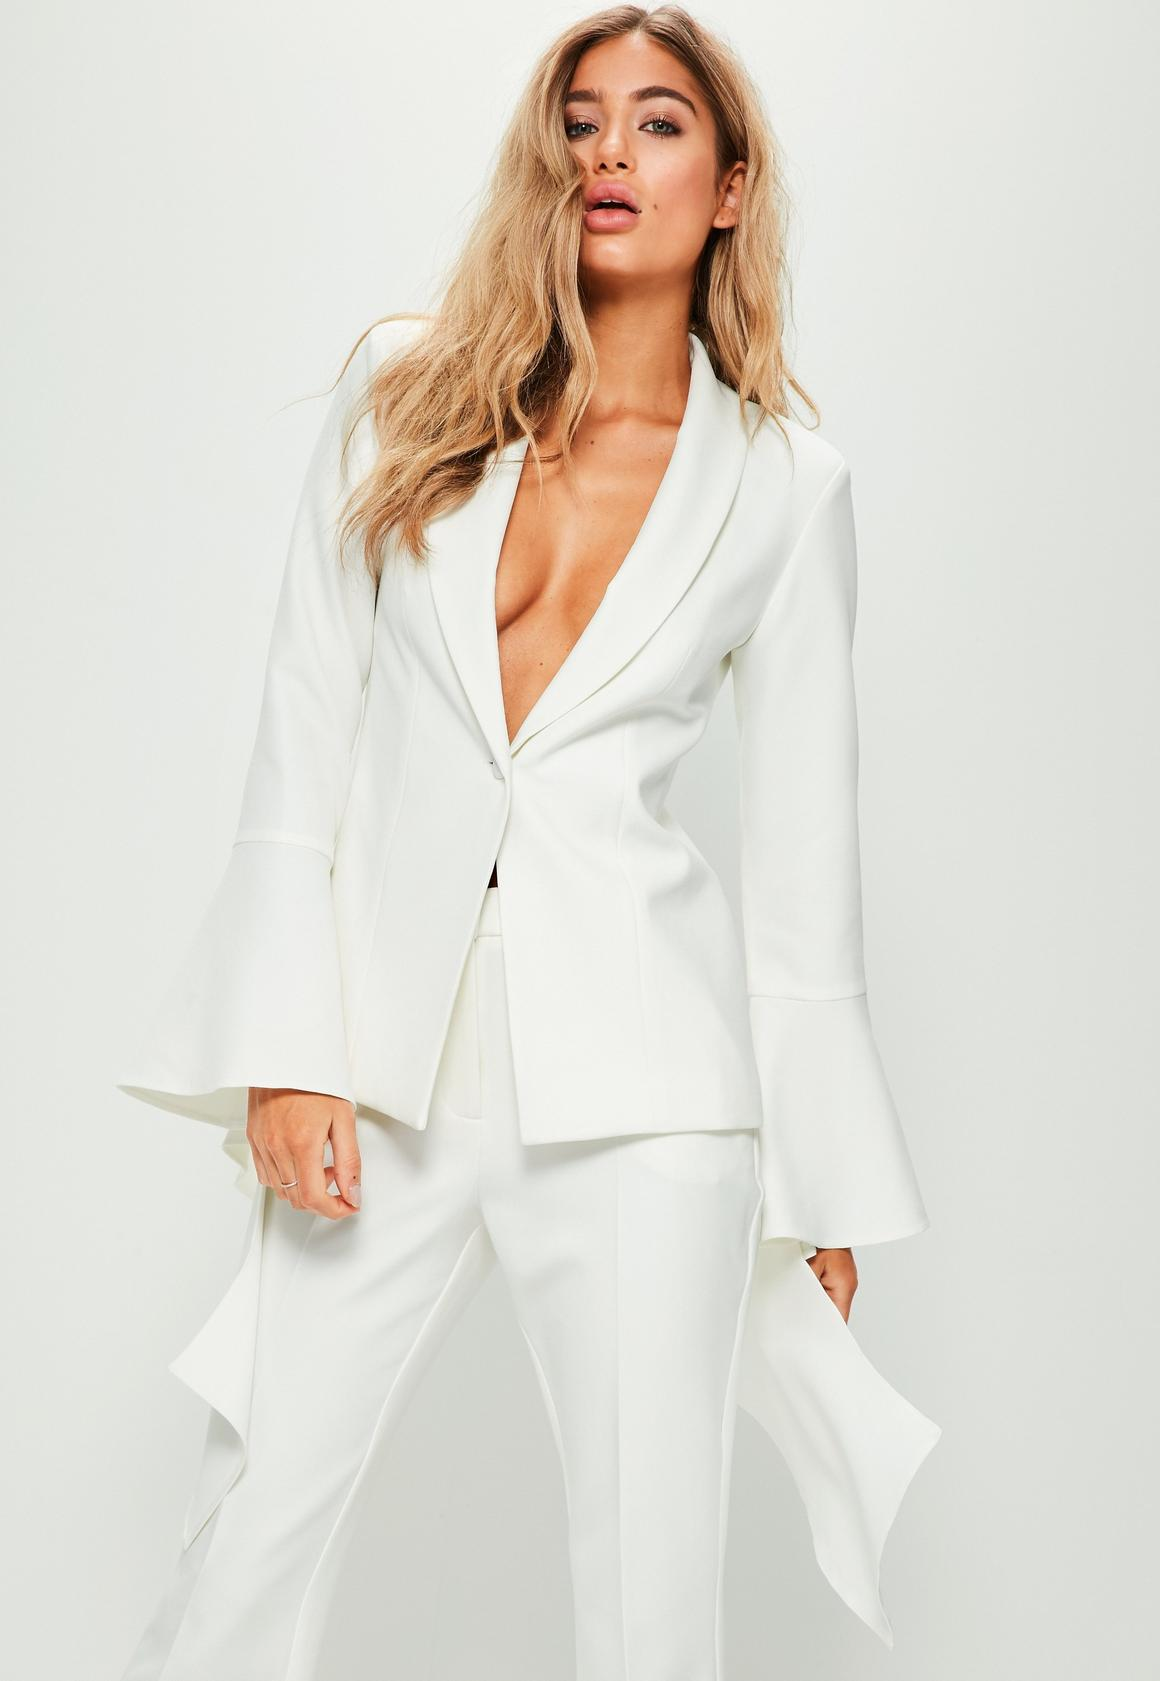 Tailored Blazer - Women's Slim Fit Blazers | Missguided